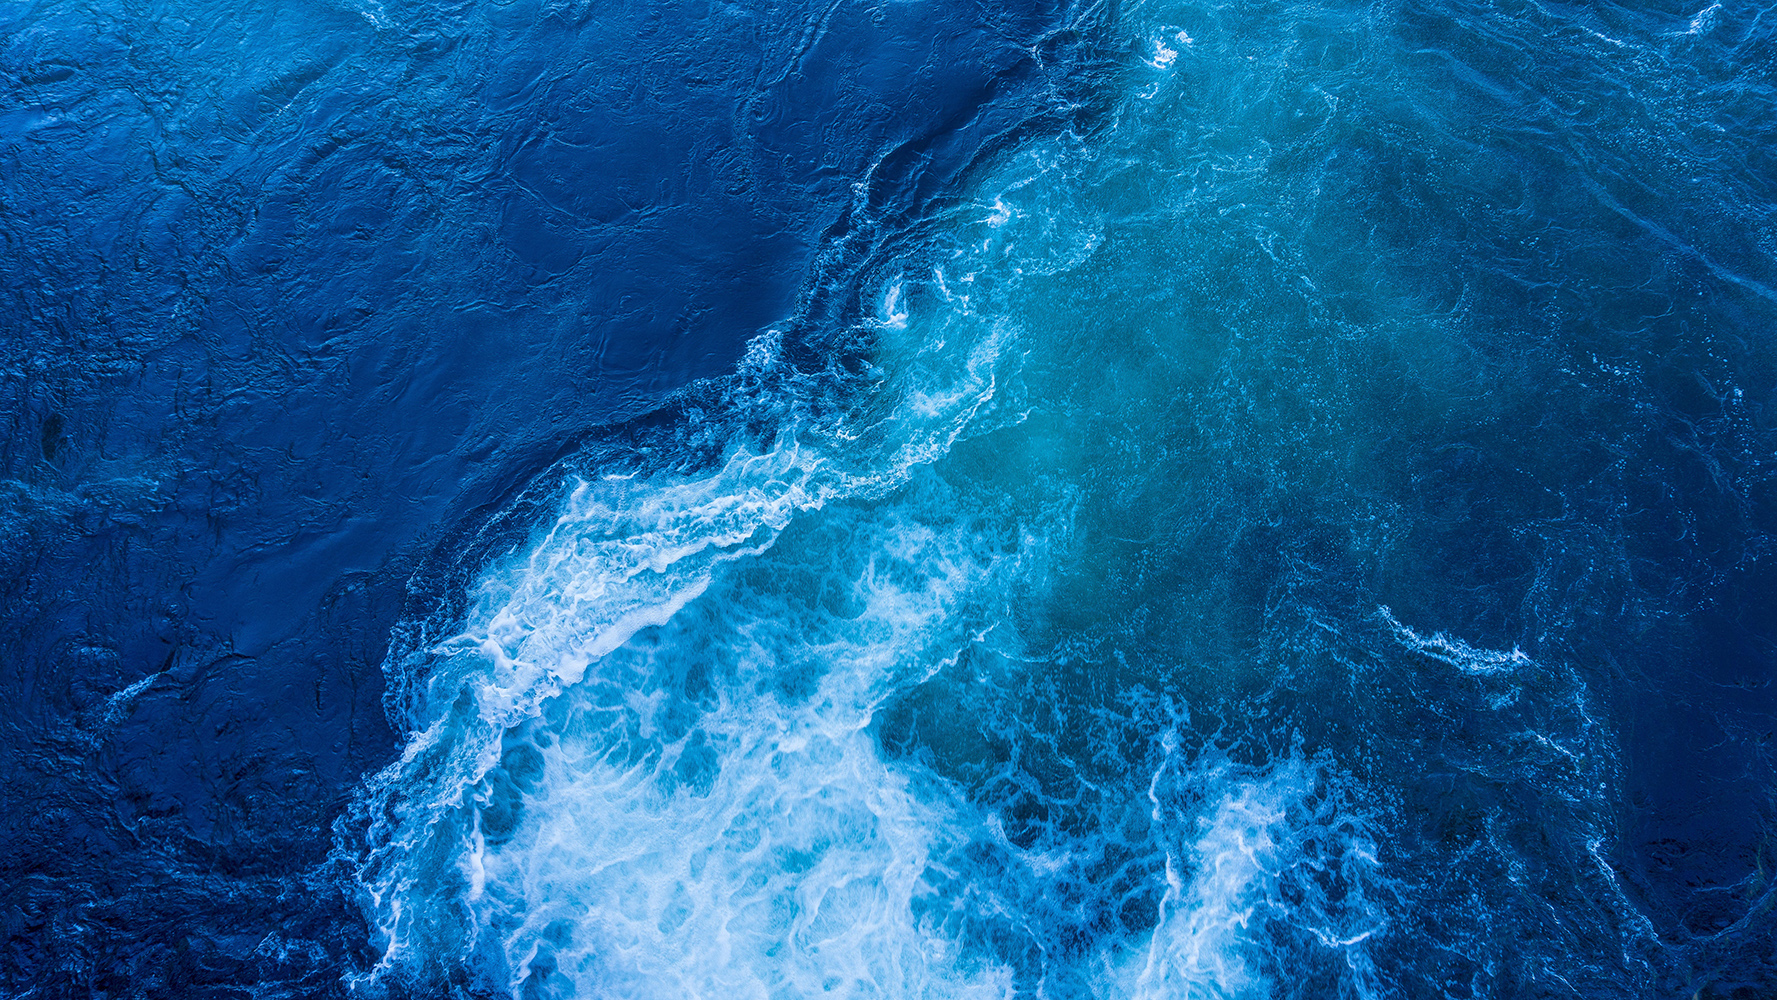 Blue ocean tide with foam